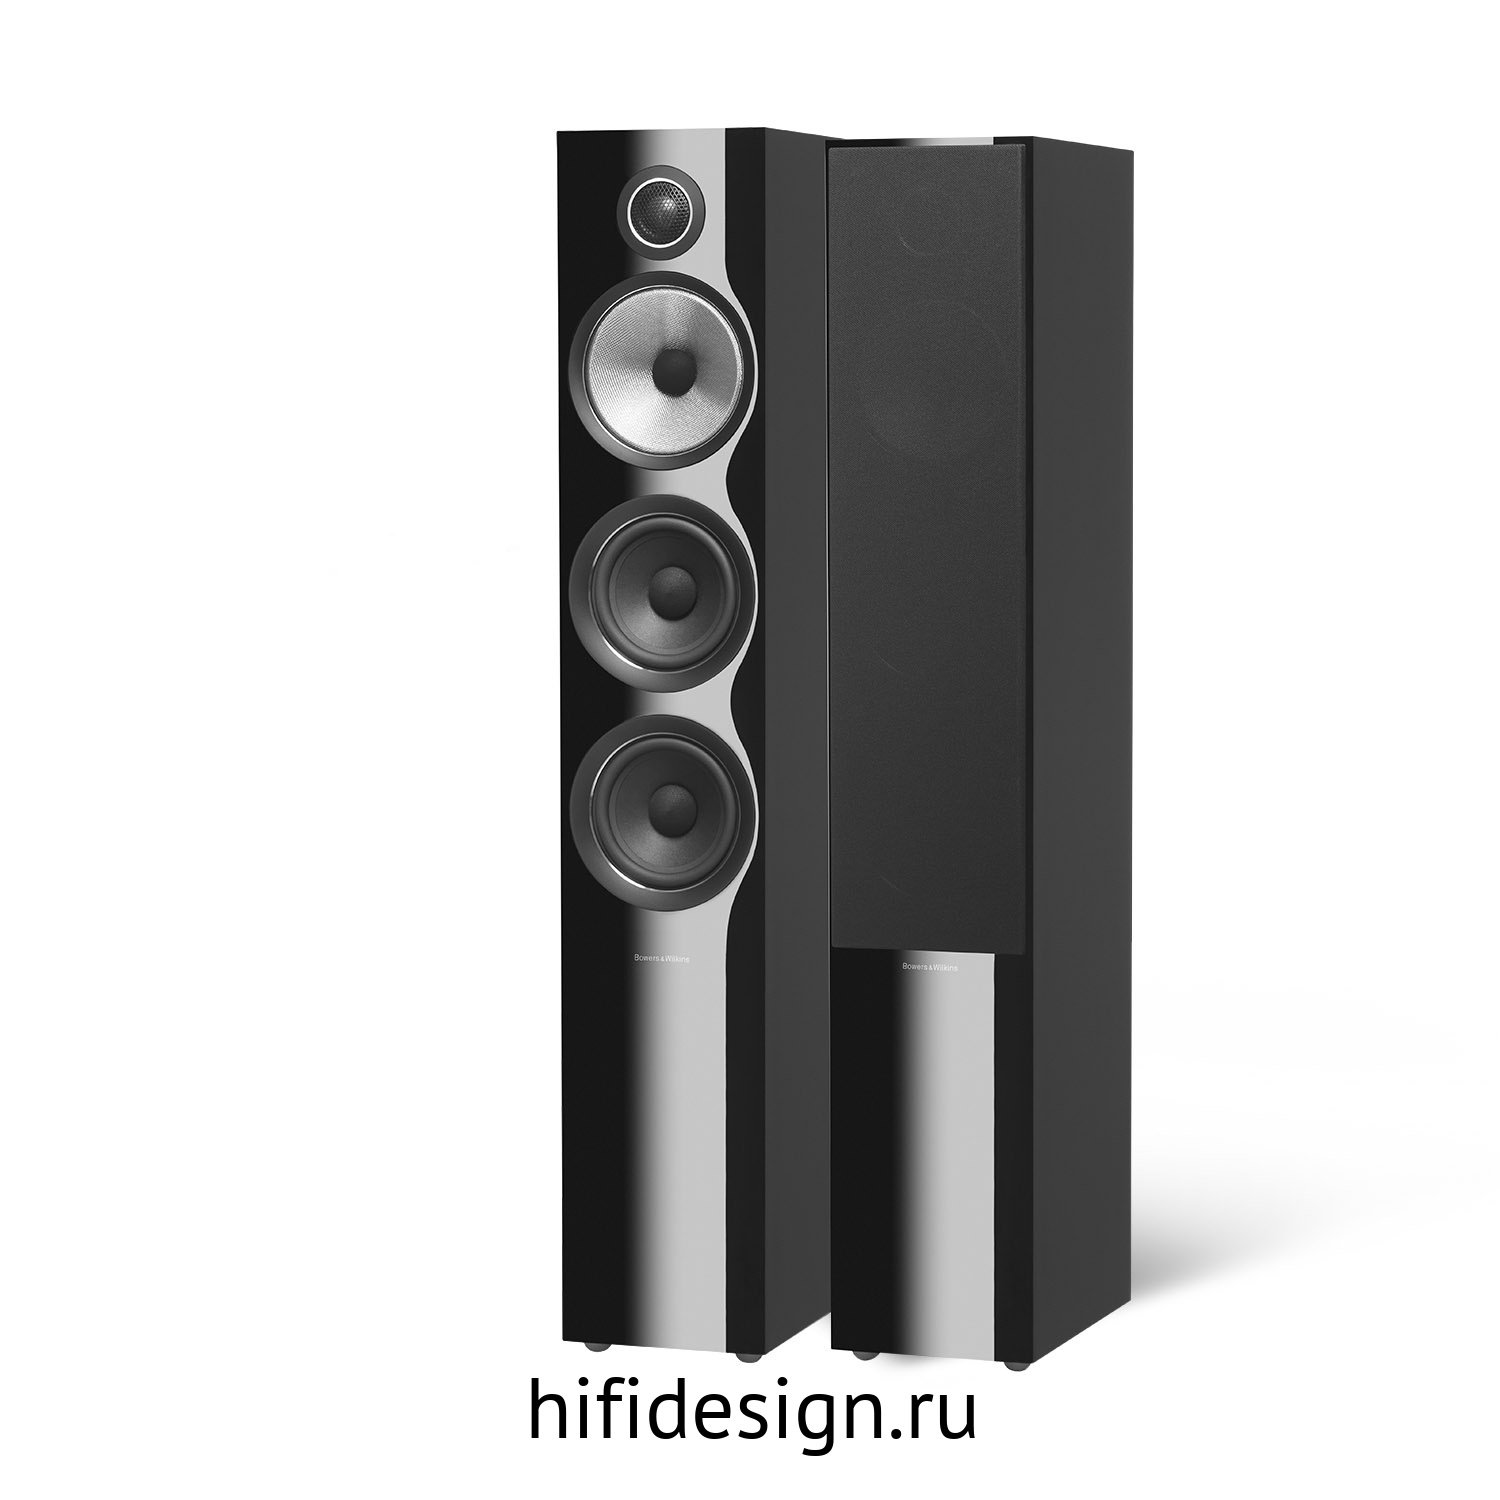 ГЉГіГЇГЁГІГј Bowers&Wilkins 704 S2 gloss black